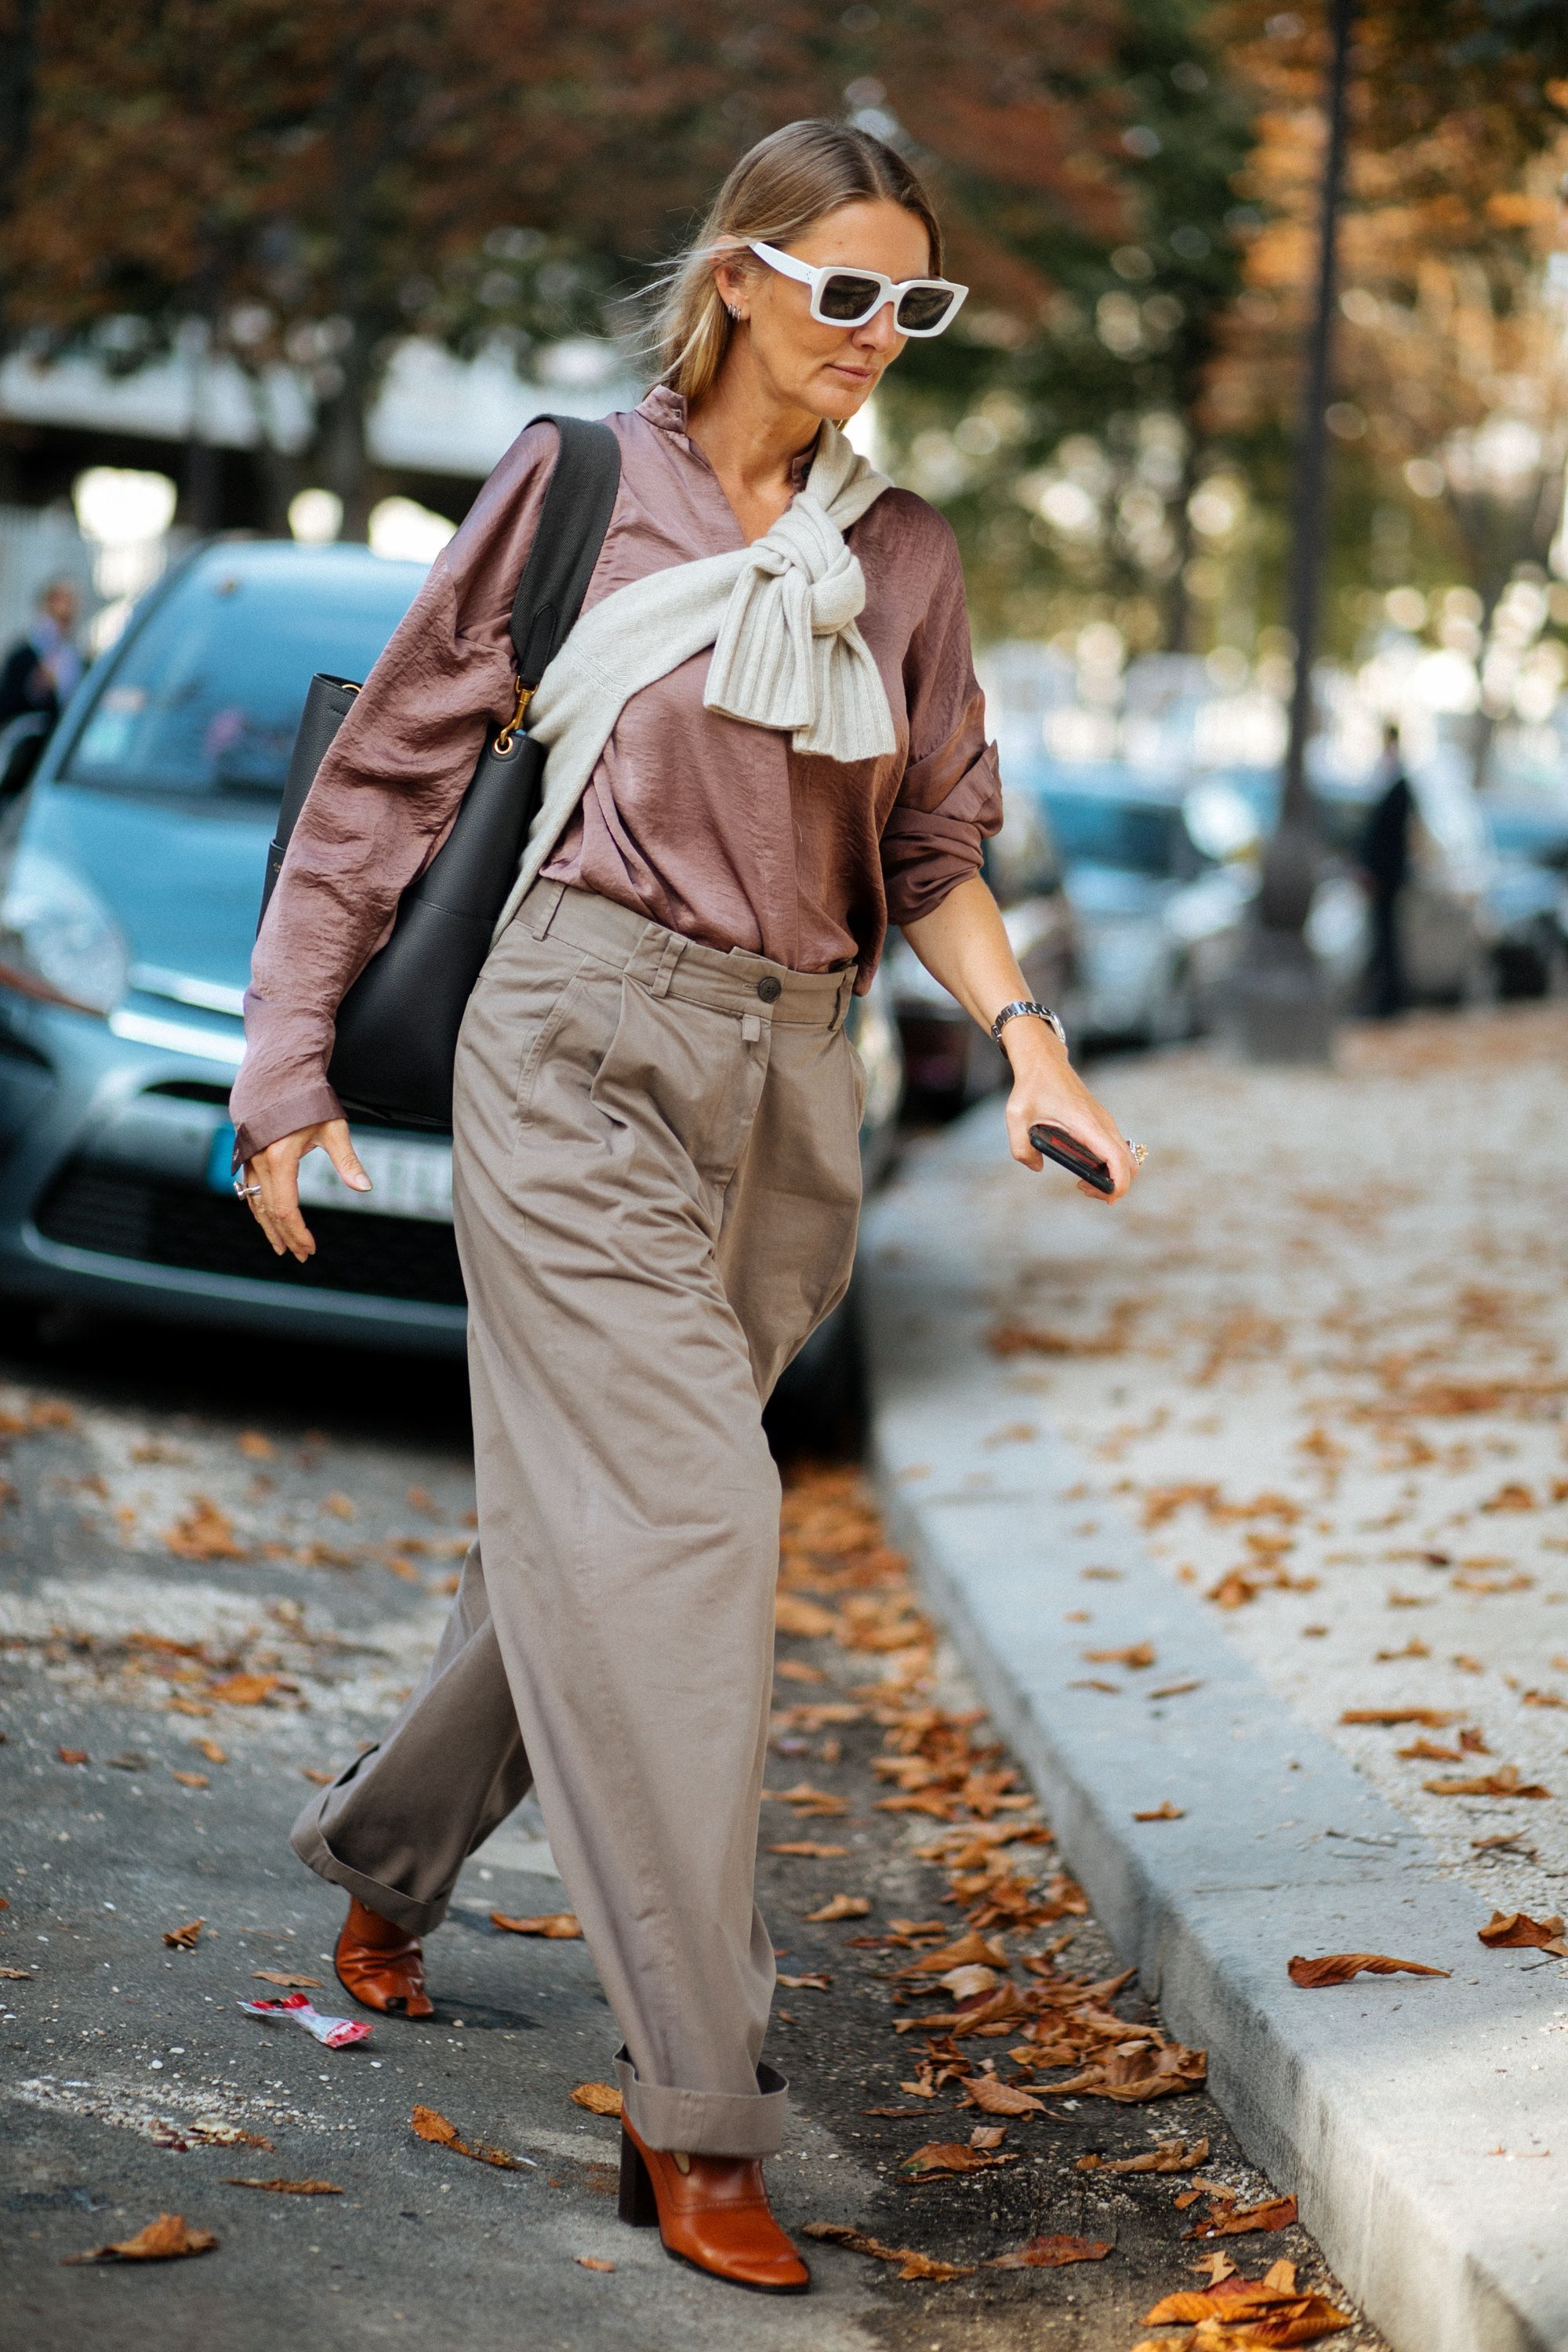 Forum on this topic: Paris Street Style: See the Bag Everyone , paris-street-style-see-the-bag-everyone/